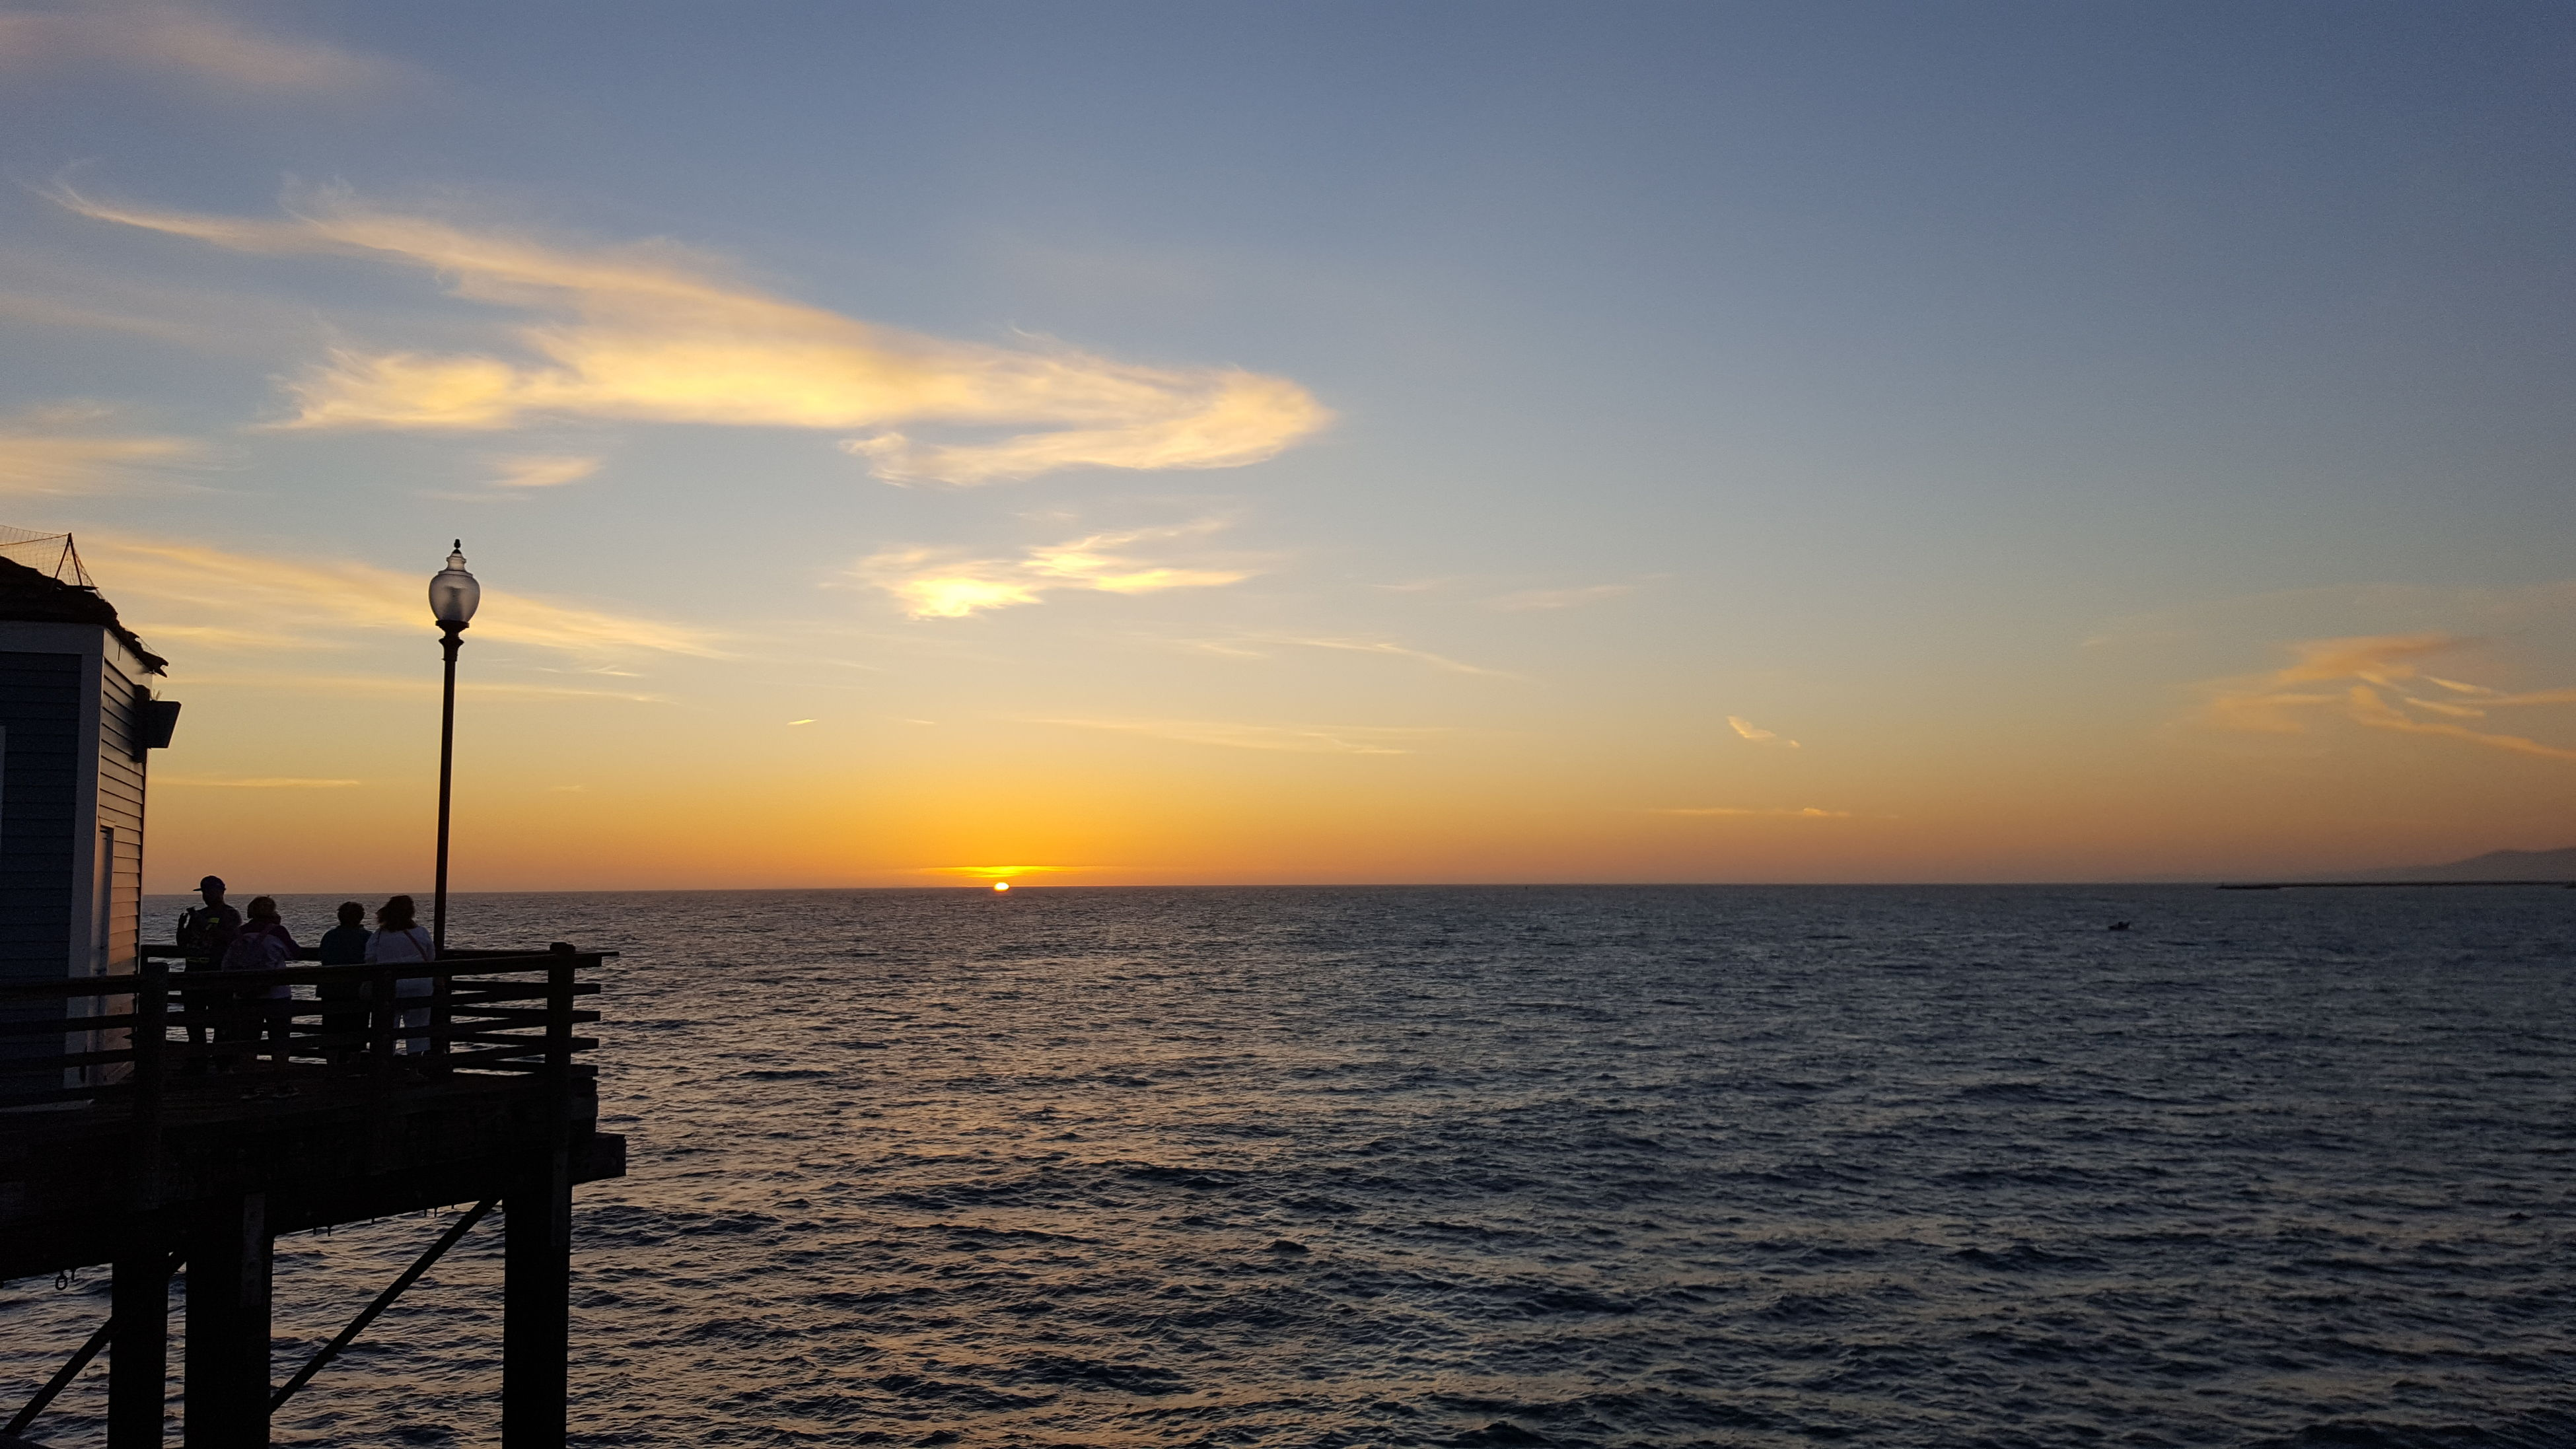 sea, horizon over water, sunset, water, scenics, tranquil scene, beauty in nature, sky, tranquility, nature, idyllic, orange color, silhouette, sun, rippled, cloud - sky, ocean, outdoors, cloud, remote